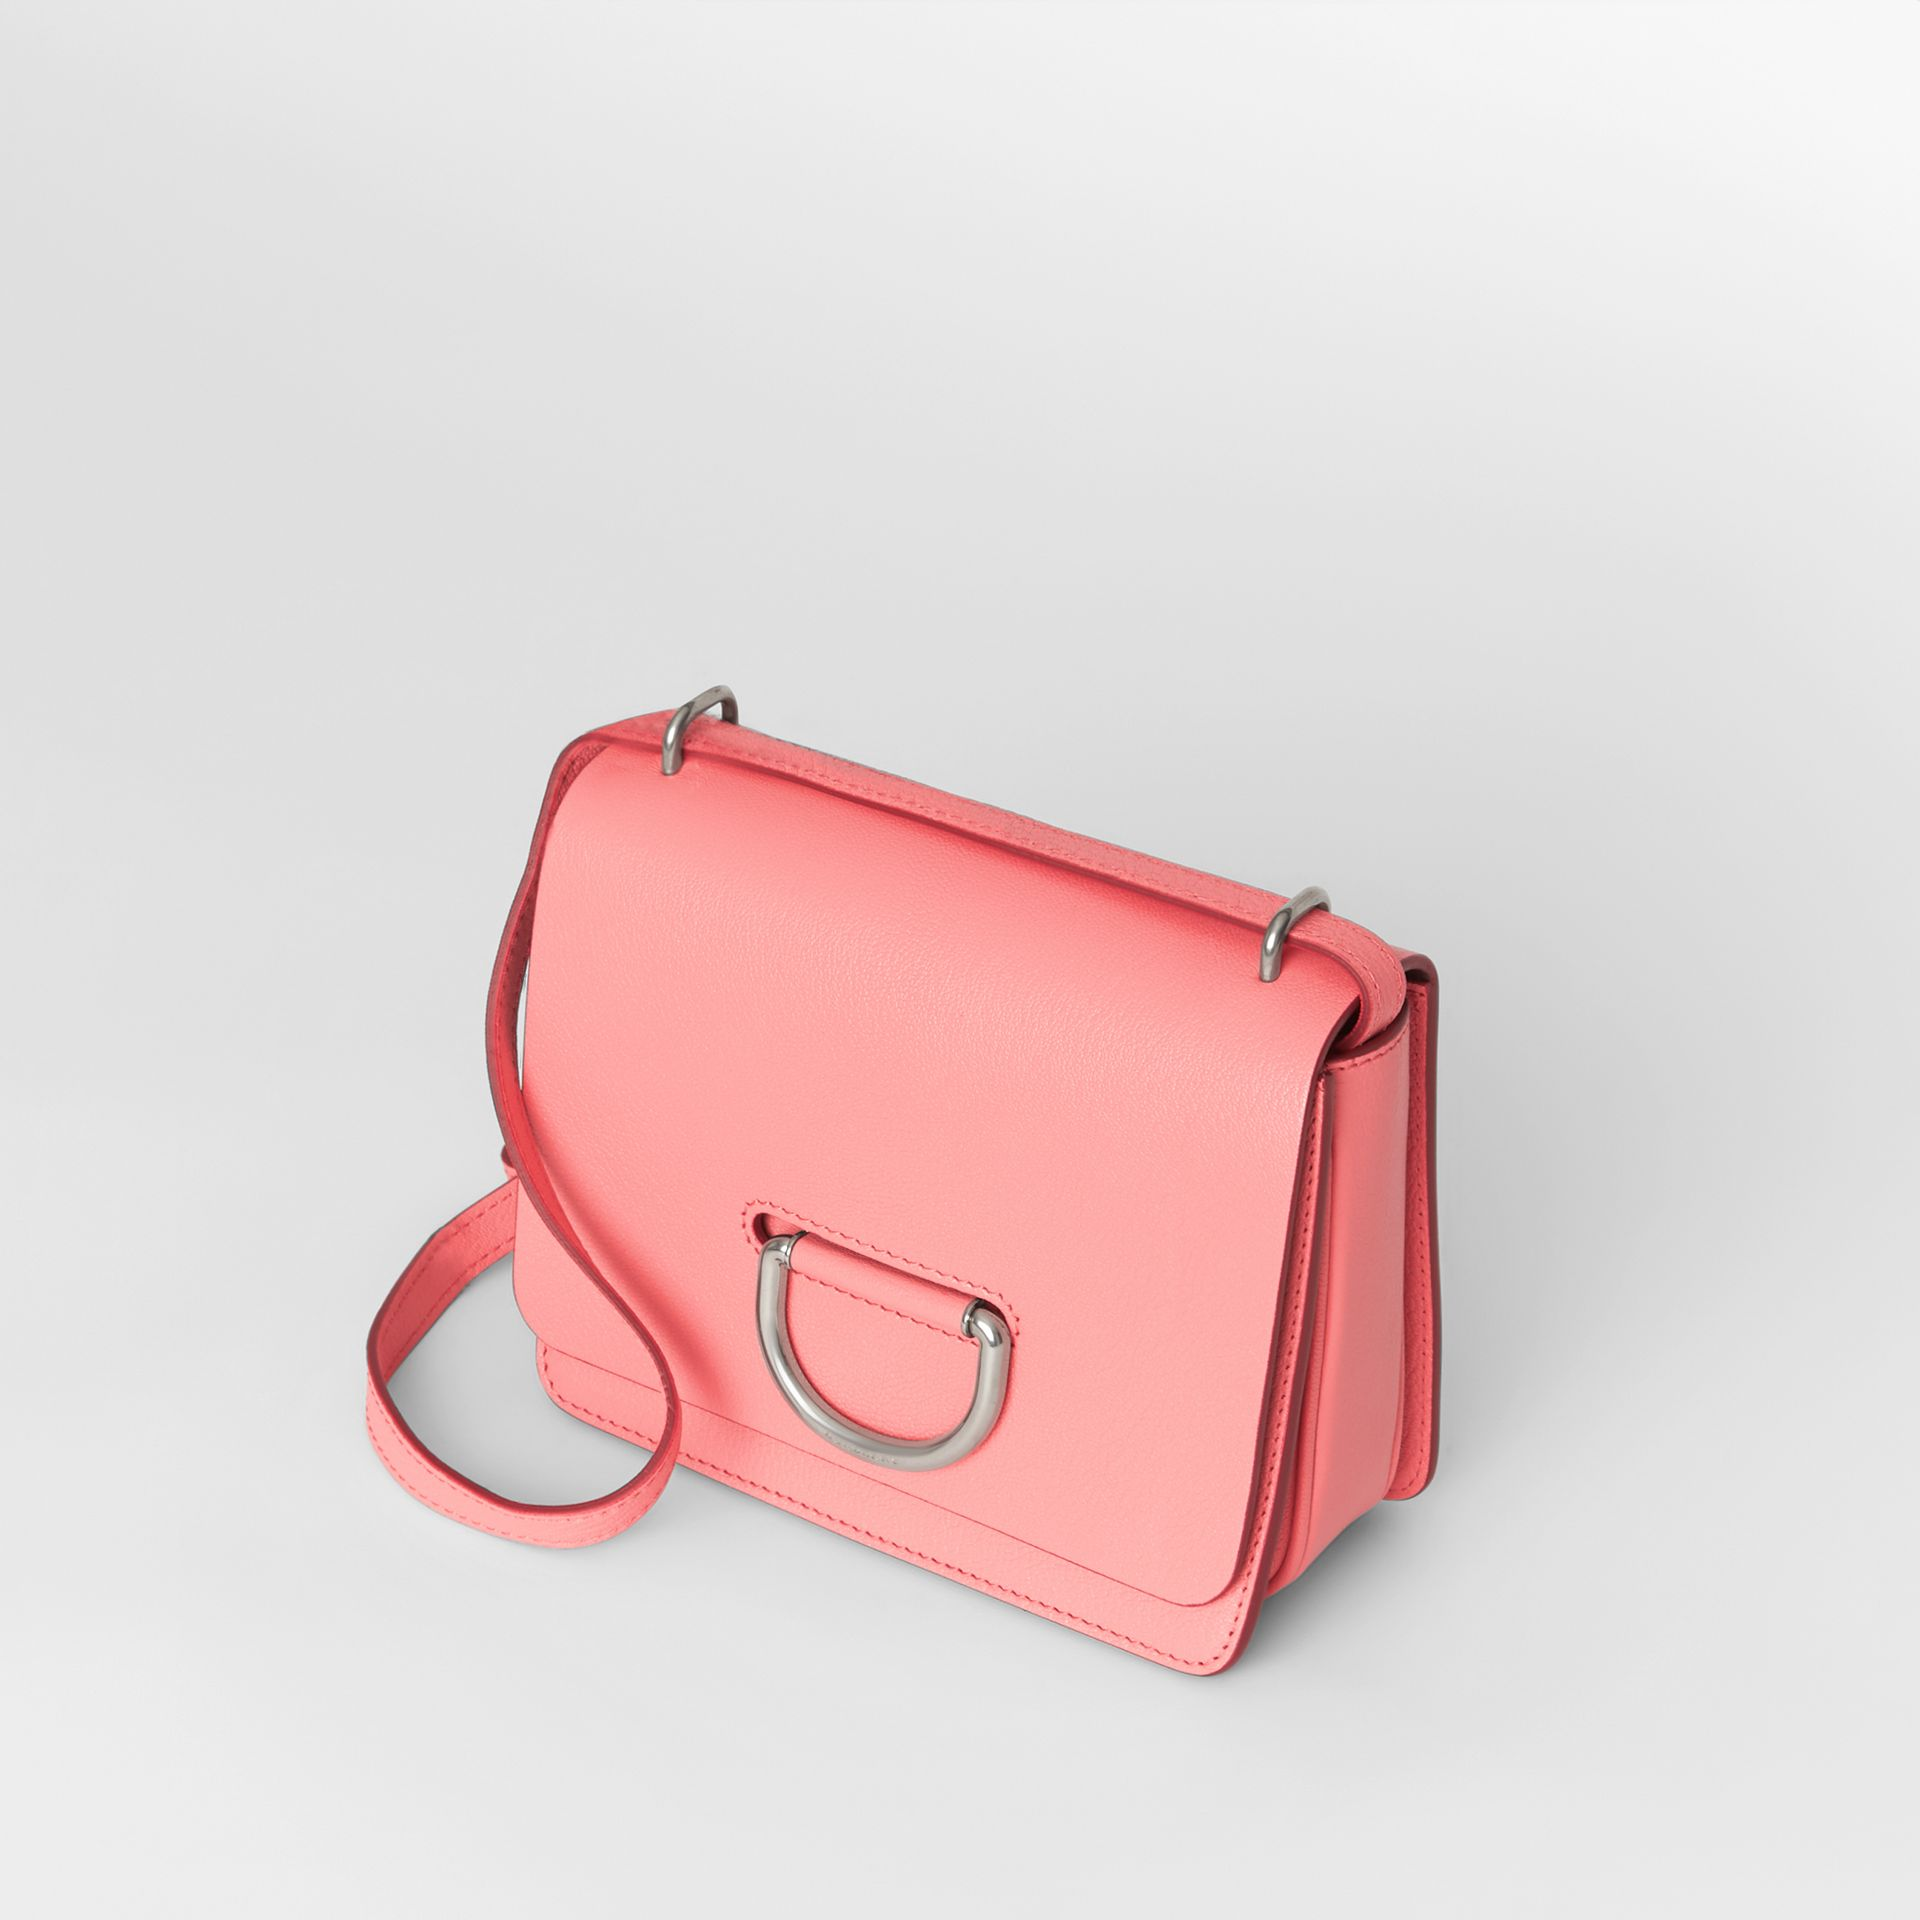 The Small Leather D-ring Bag in Bright Coral Pink - Women | Burberry - gallery image 4